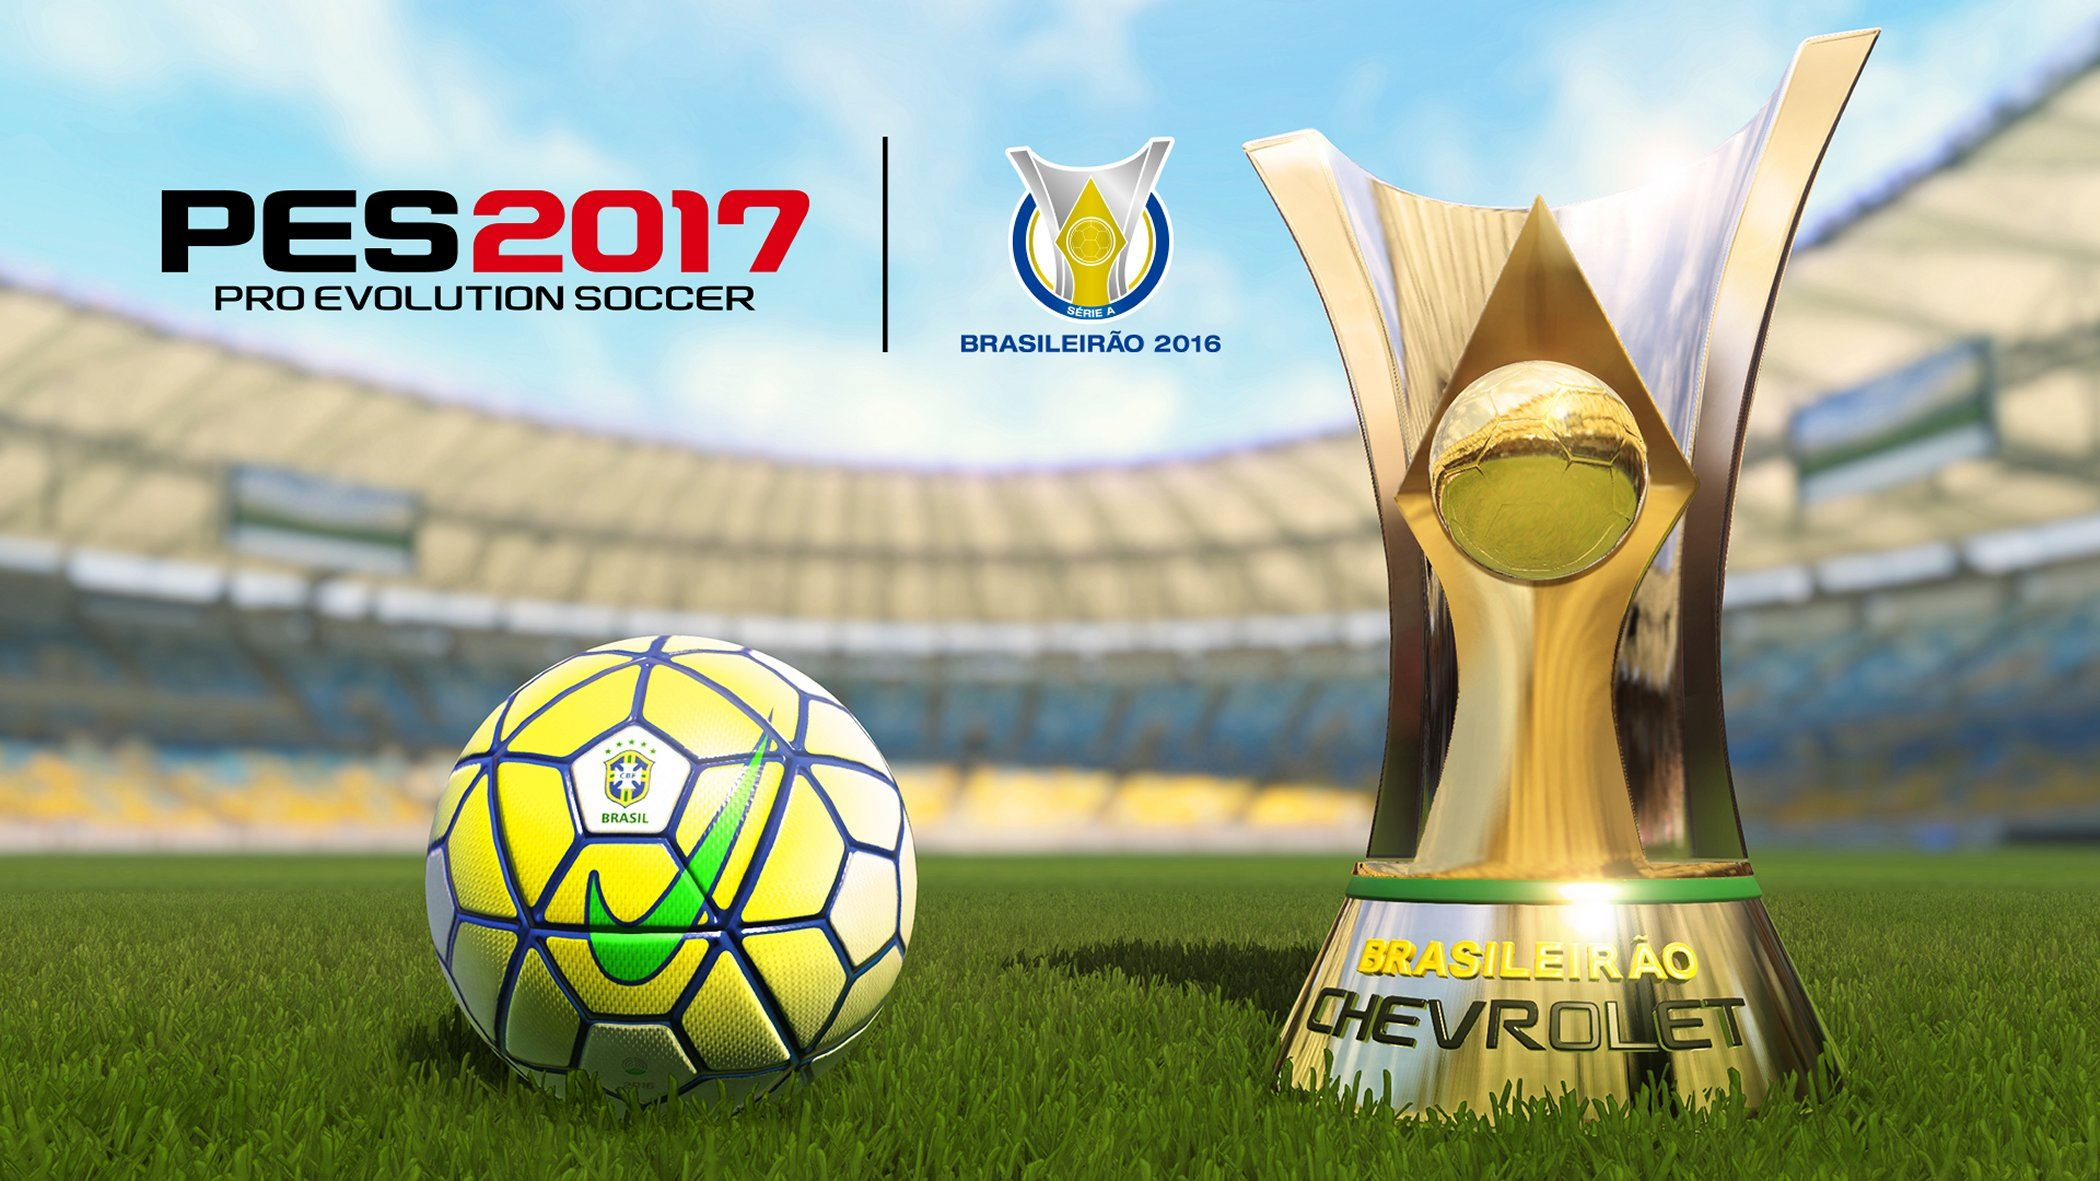 Pro Evolution Soccer 2017 - Partnerschaft mit nationalem Fußballverband Brasiliens